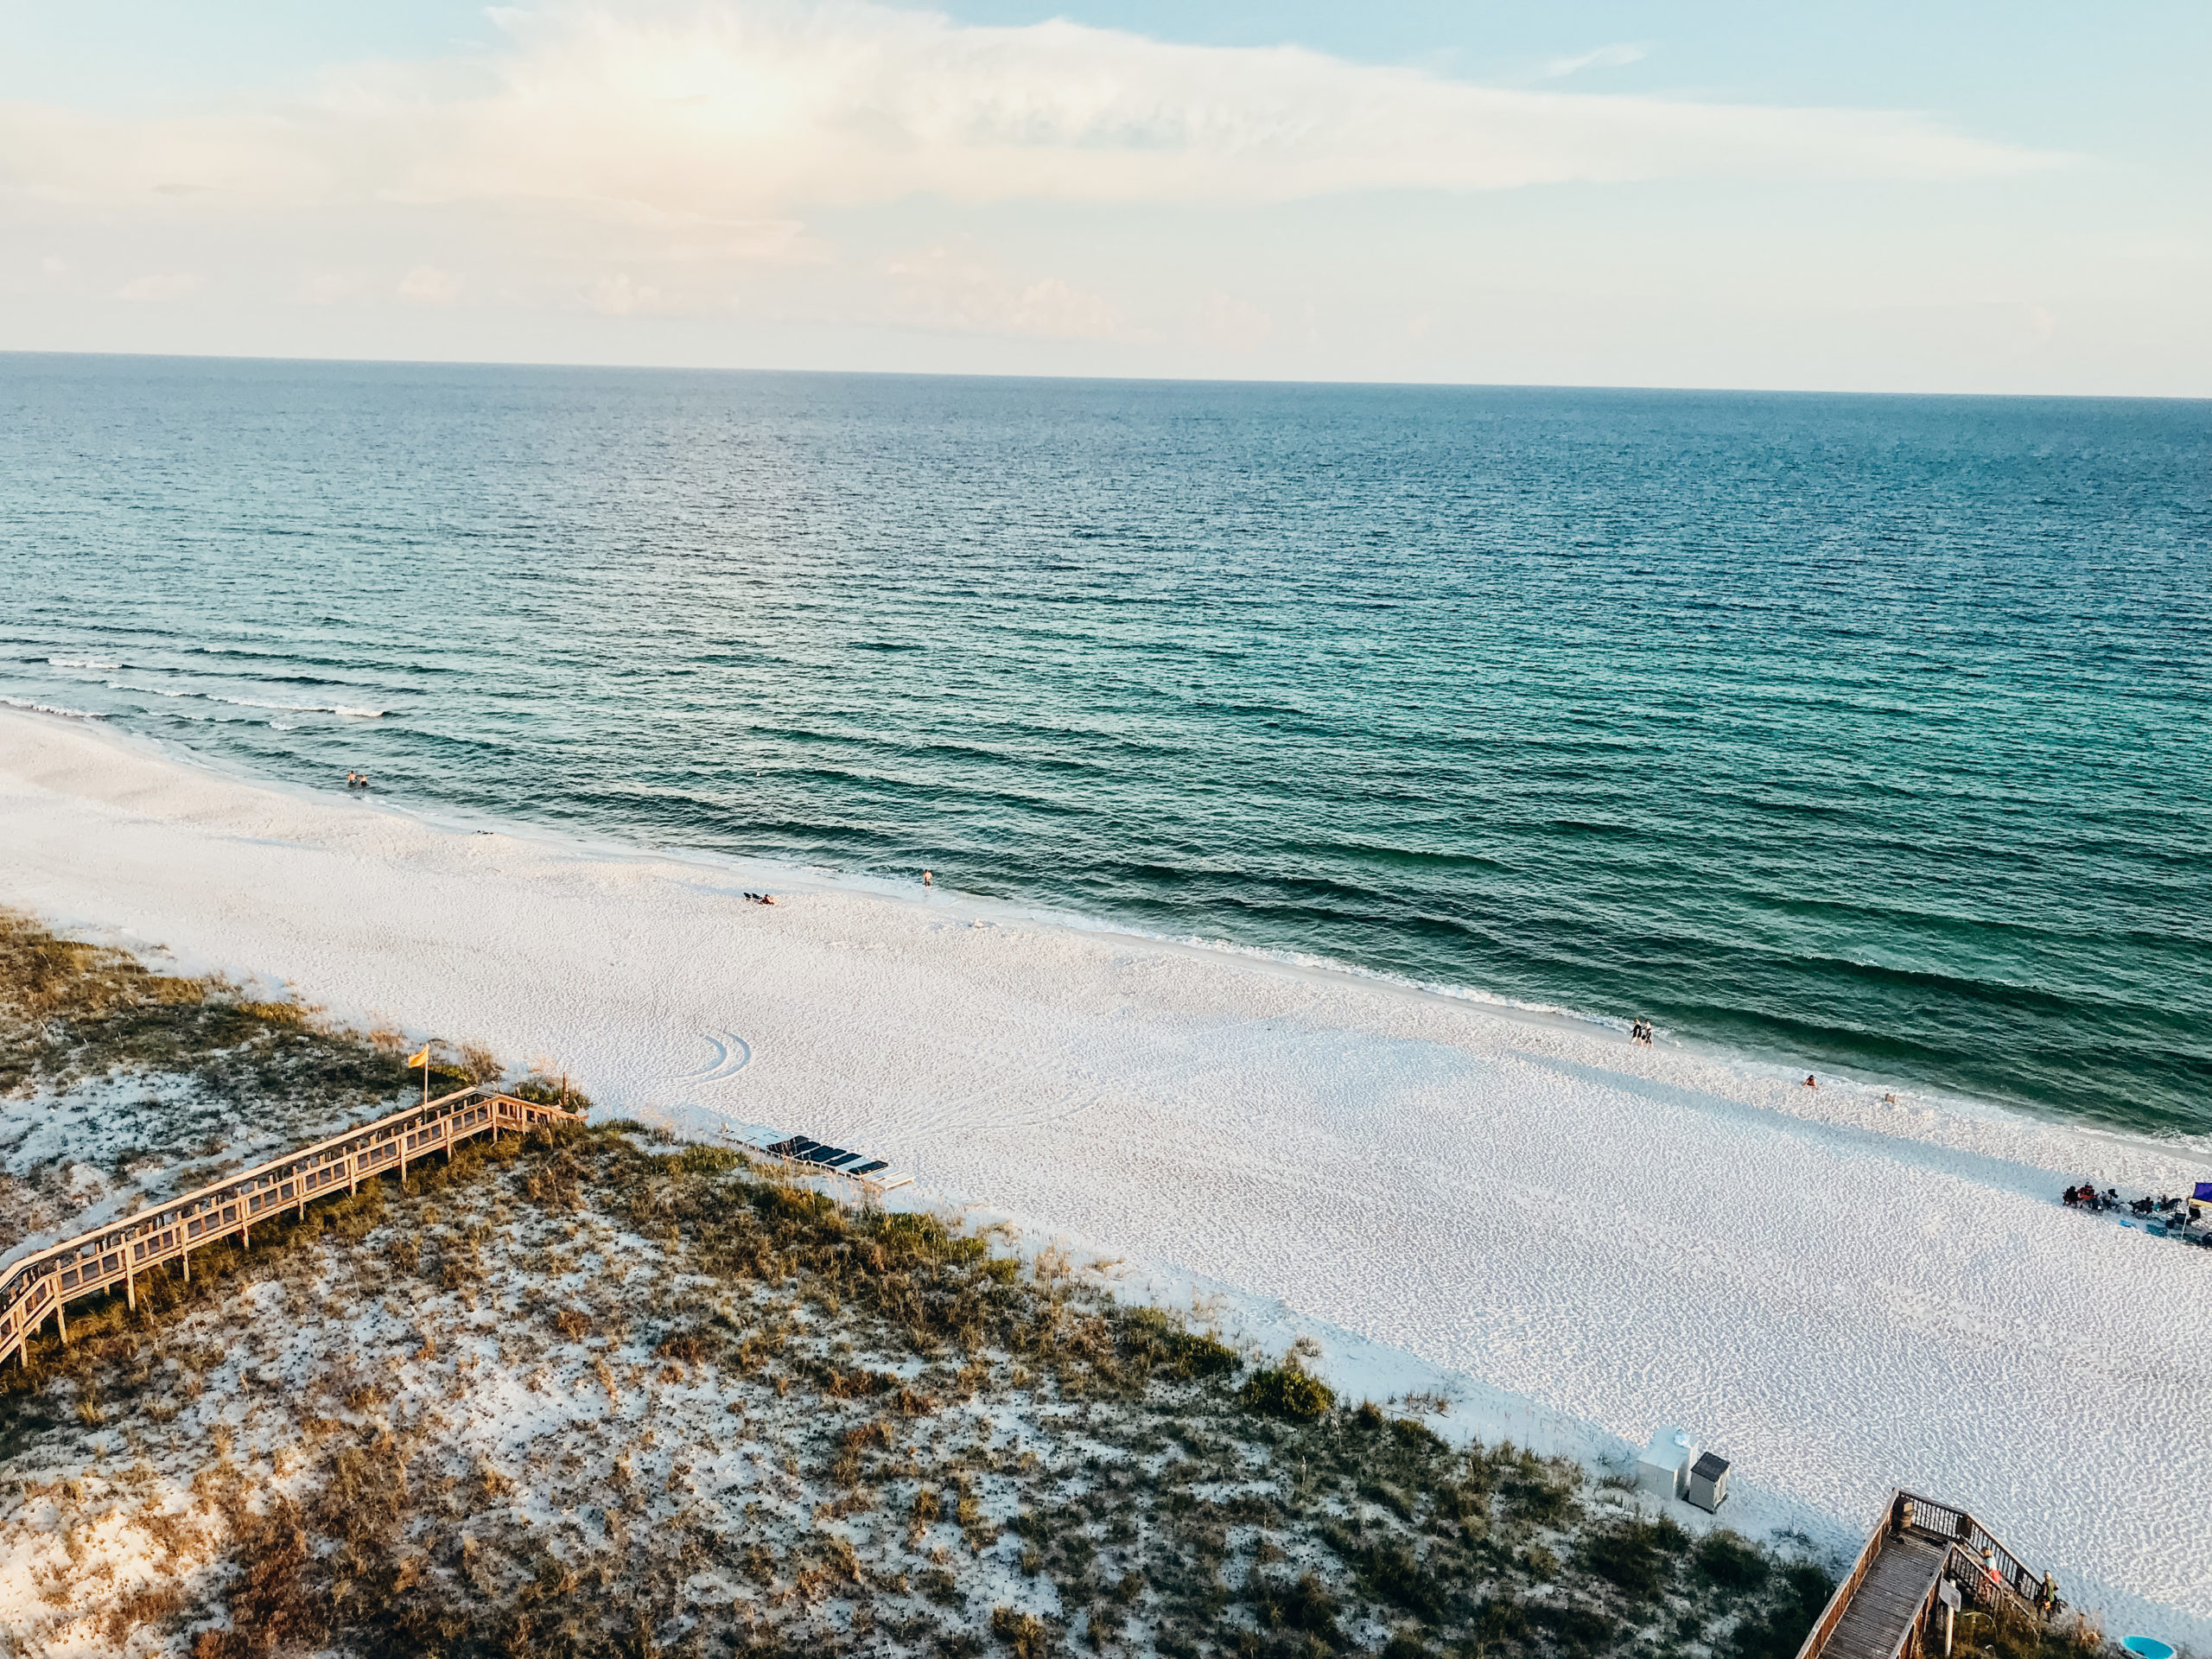 View of the beach in Navarre, Florida